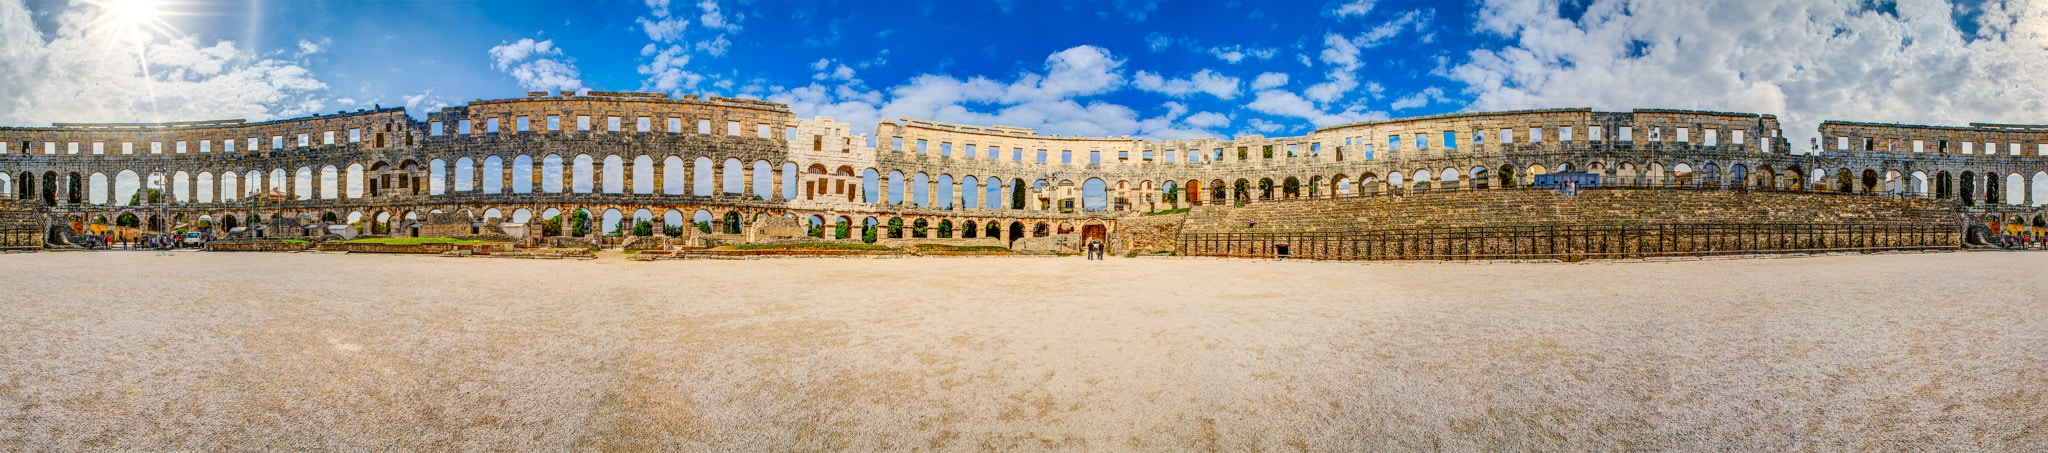 This is a 360-degree view of Pula Arena, one of the best preserved Roam Amphitheaters in the world. It is located in the Istrian city of Pula, Croatia.